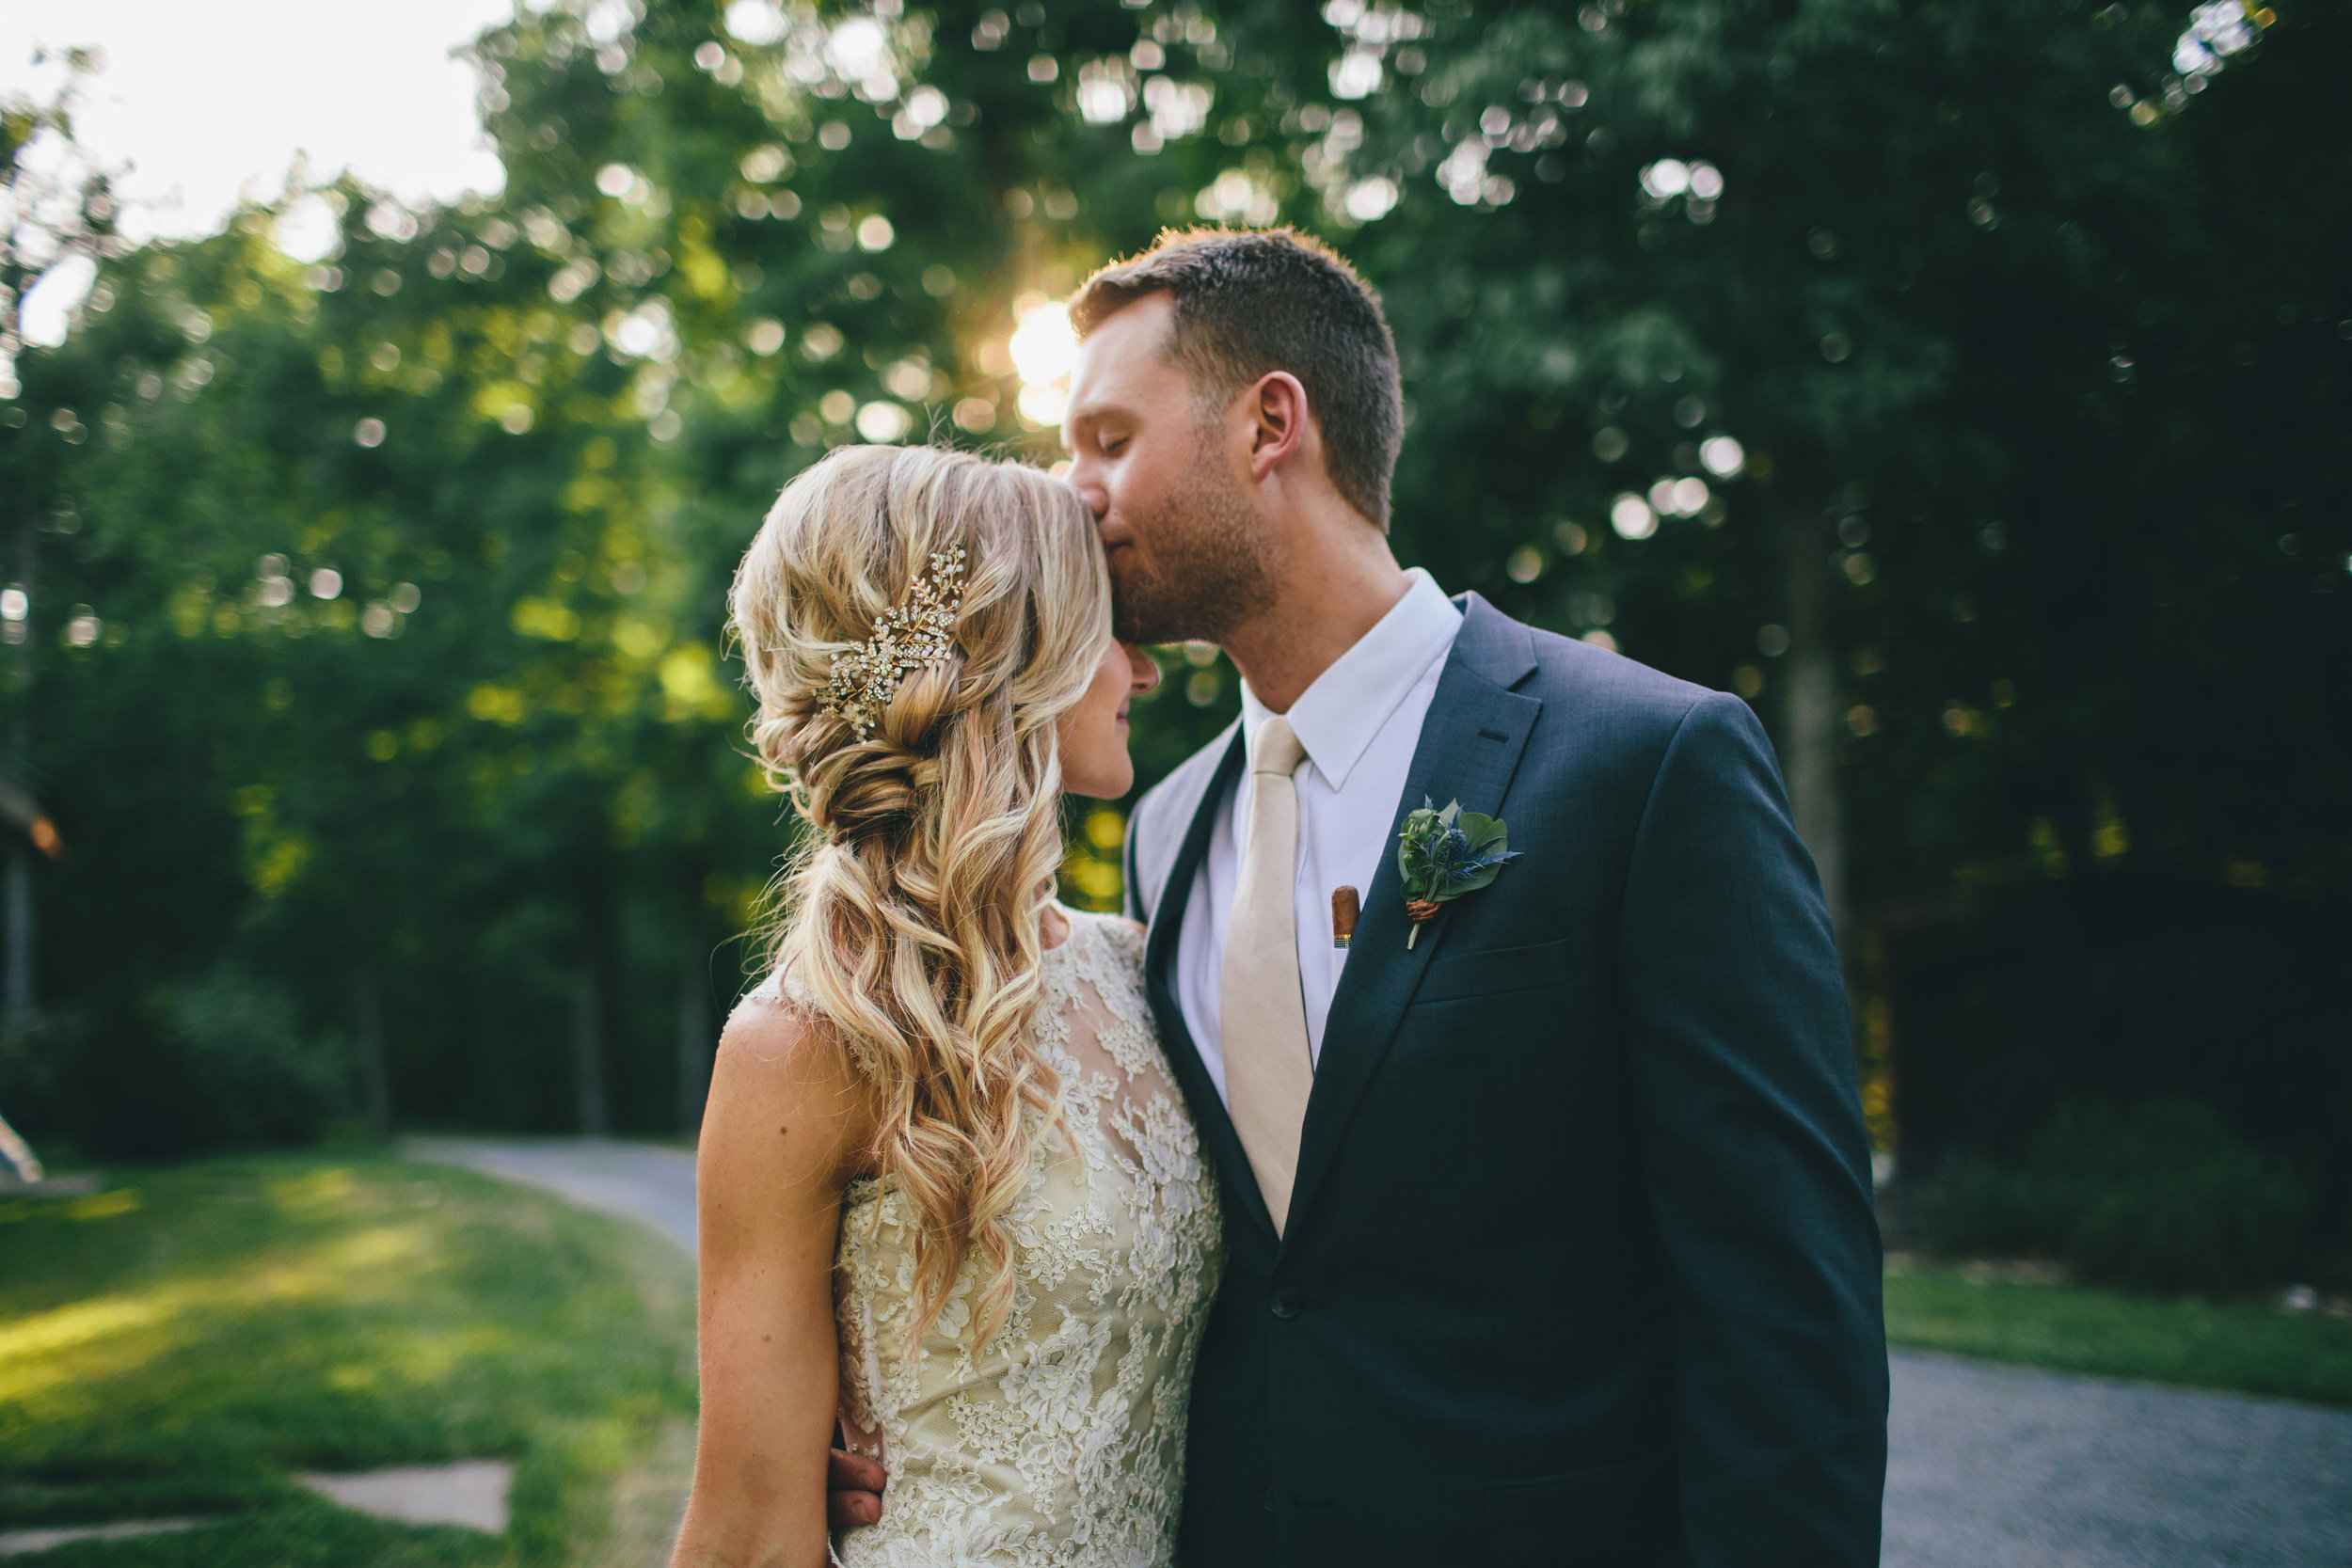 Wedding packages - We have many different packages to choose from!Pricing ranges:The Carolina Barn Package - $4,500-$7,000 .  The Carolina Farmhouse Package - $1,700-$3,700 (small weddings only - up to 32 guests)The Lodge Package - $2,450-$3,700 (winter weddings)The All-Inclusive Package - Pricing variesFor more information on pricing and availability, please send us a message using the contact form!Photo: Two Cents Photo + Film